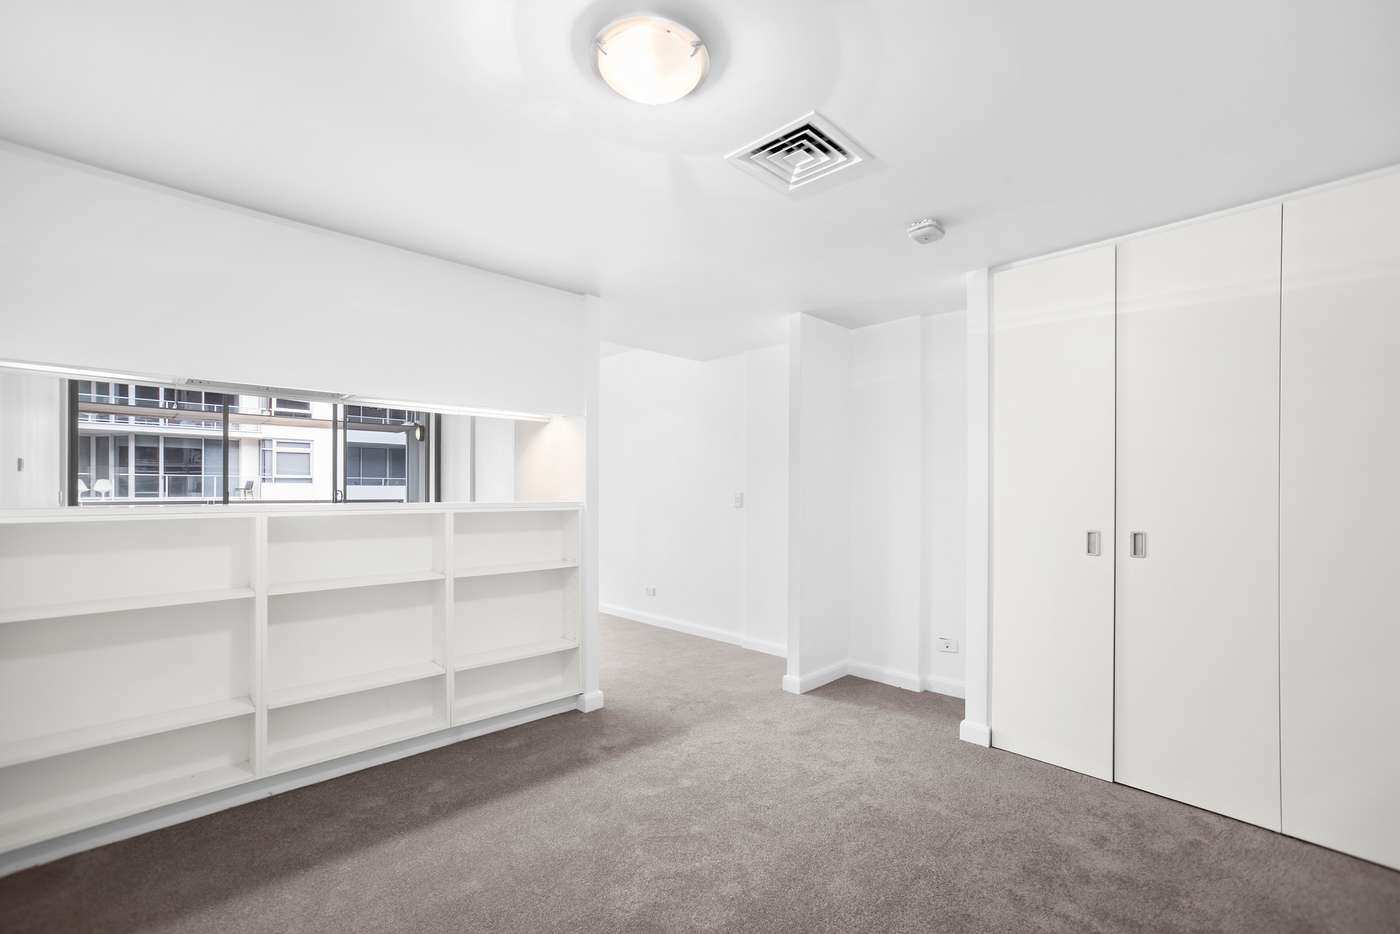 Fifth view of Homely studio listing, 609/45 Shelley Street, Sydney NSW 2000